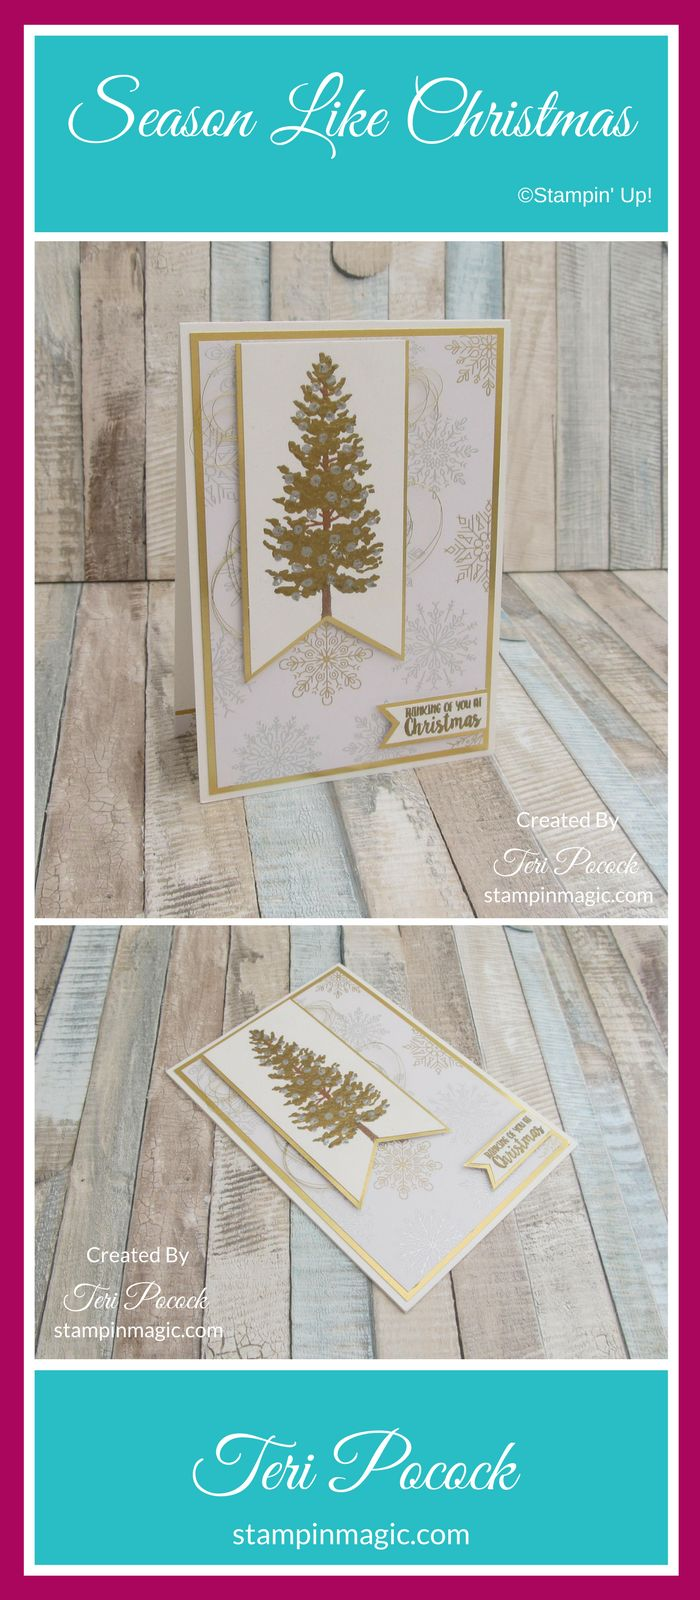 Season Like Christmas by Stampin Up. Created by UK Independent Demonstrator Teri Pocock. Click through for more details.#teripocock #stampinup #stampinupuk #seasonlikechristmas